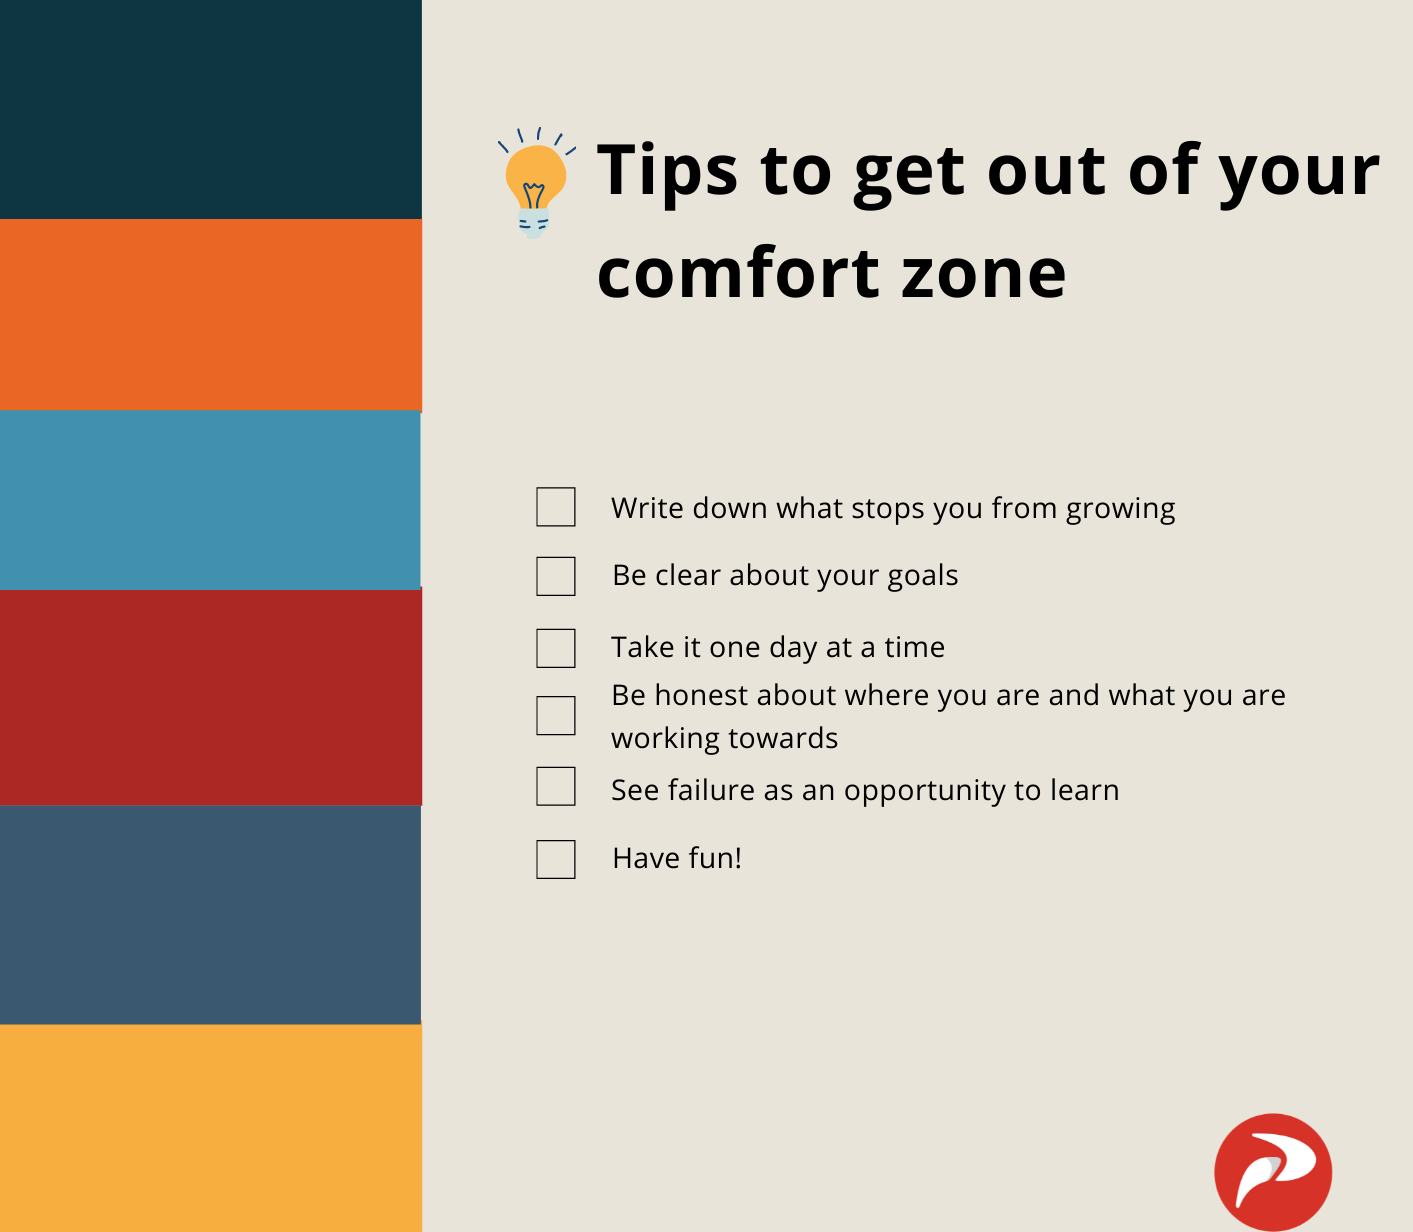 Tips to get out of your comfort zone